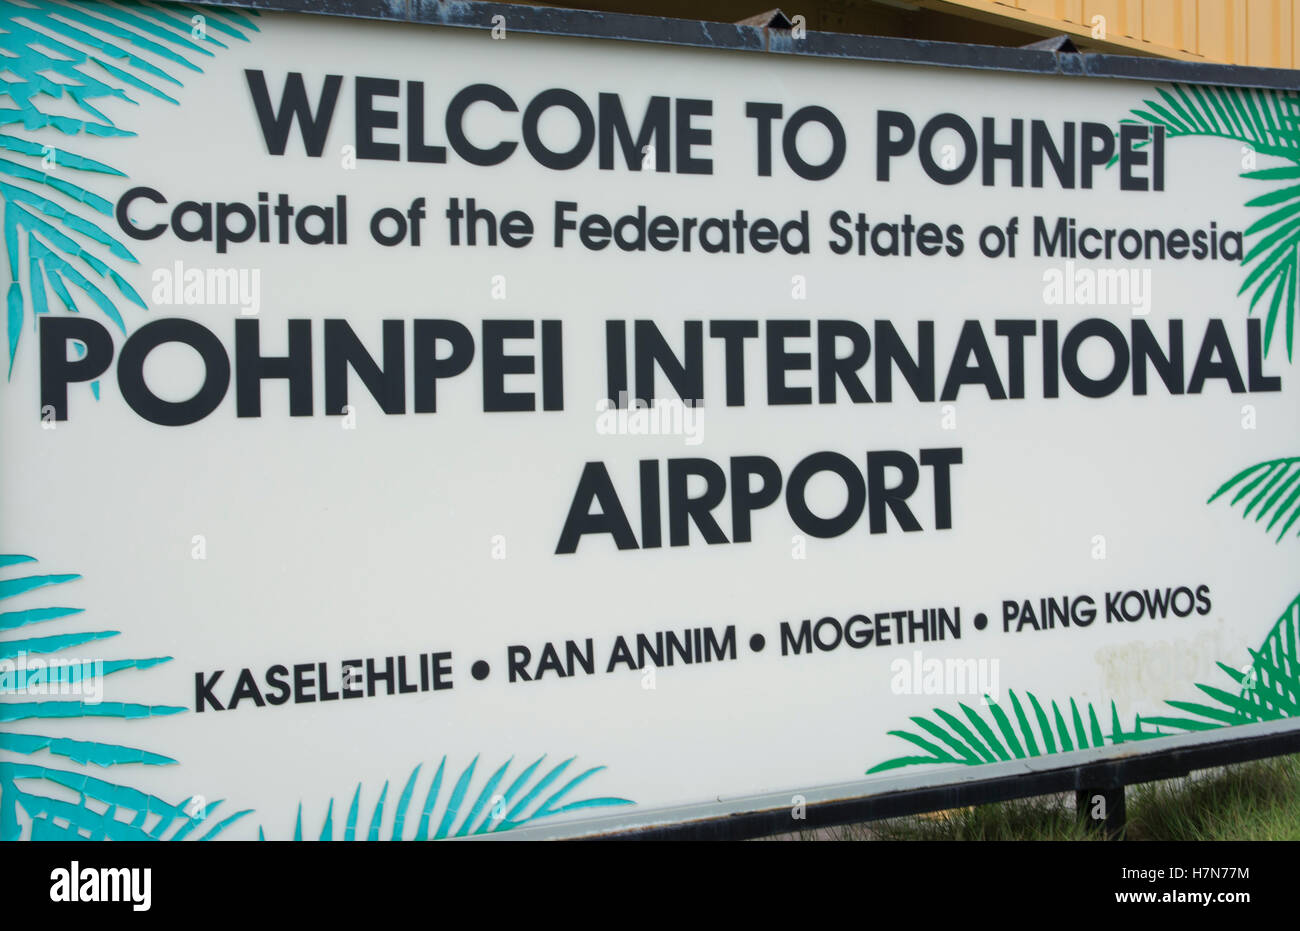 Pohnpei Micronesia airport sign welcome arrival - Stock Image